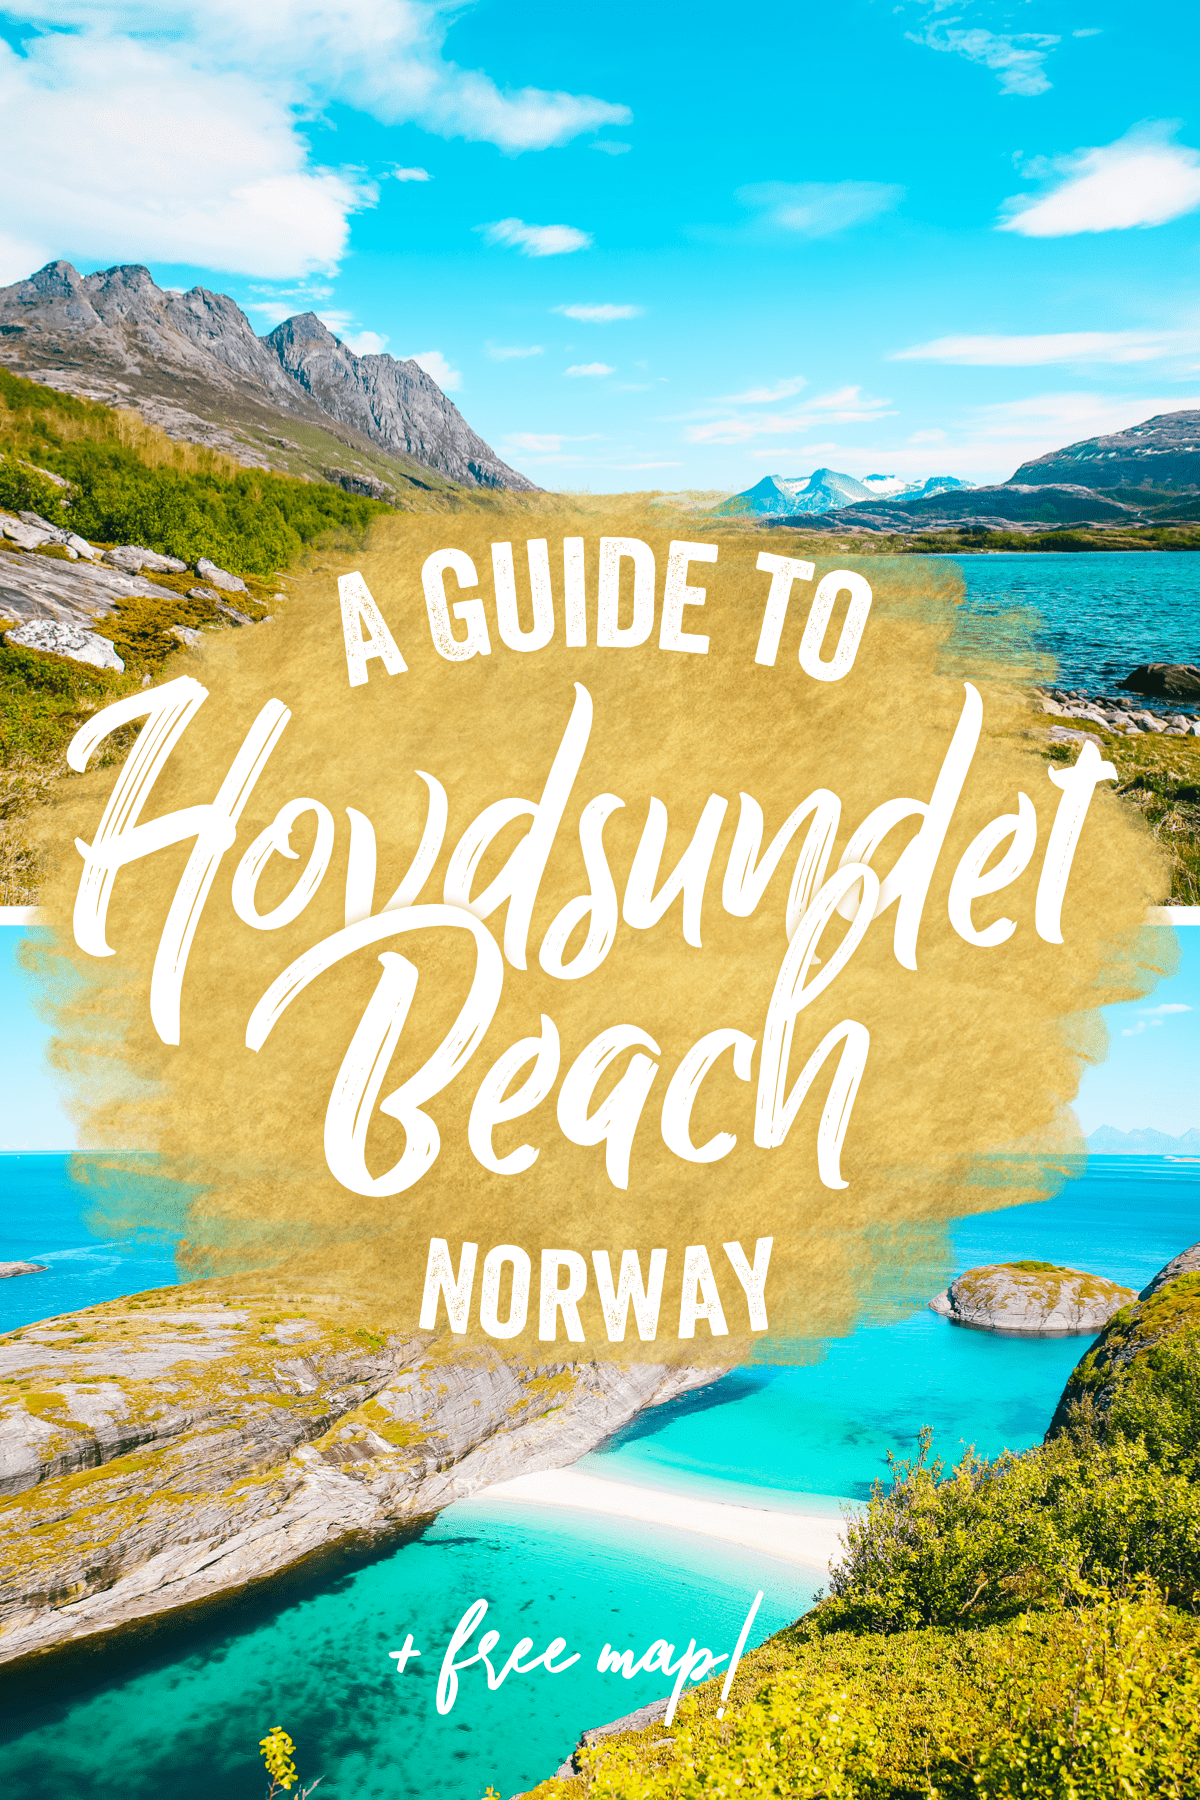 A Guide To Hovdsundet Beach in Bodø, Norway